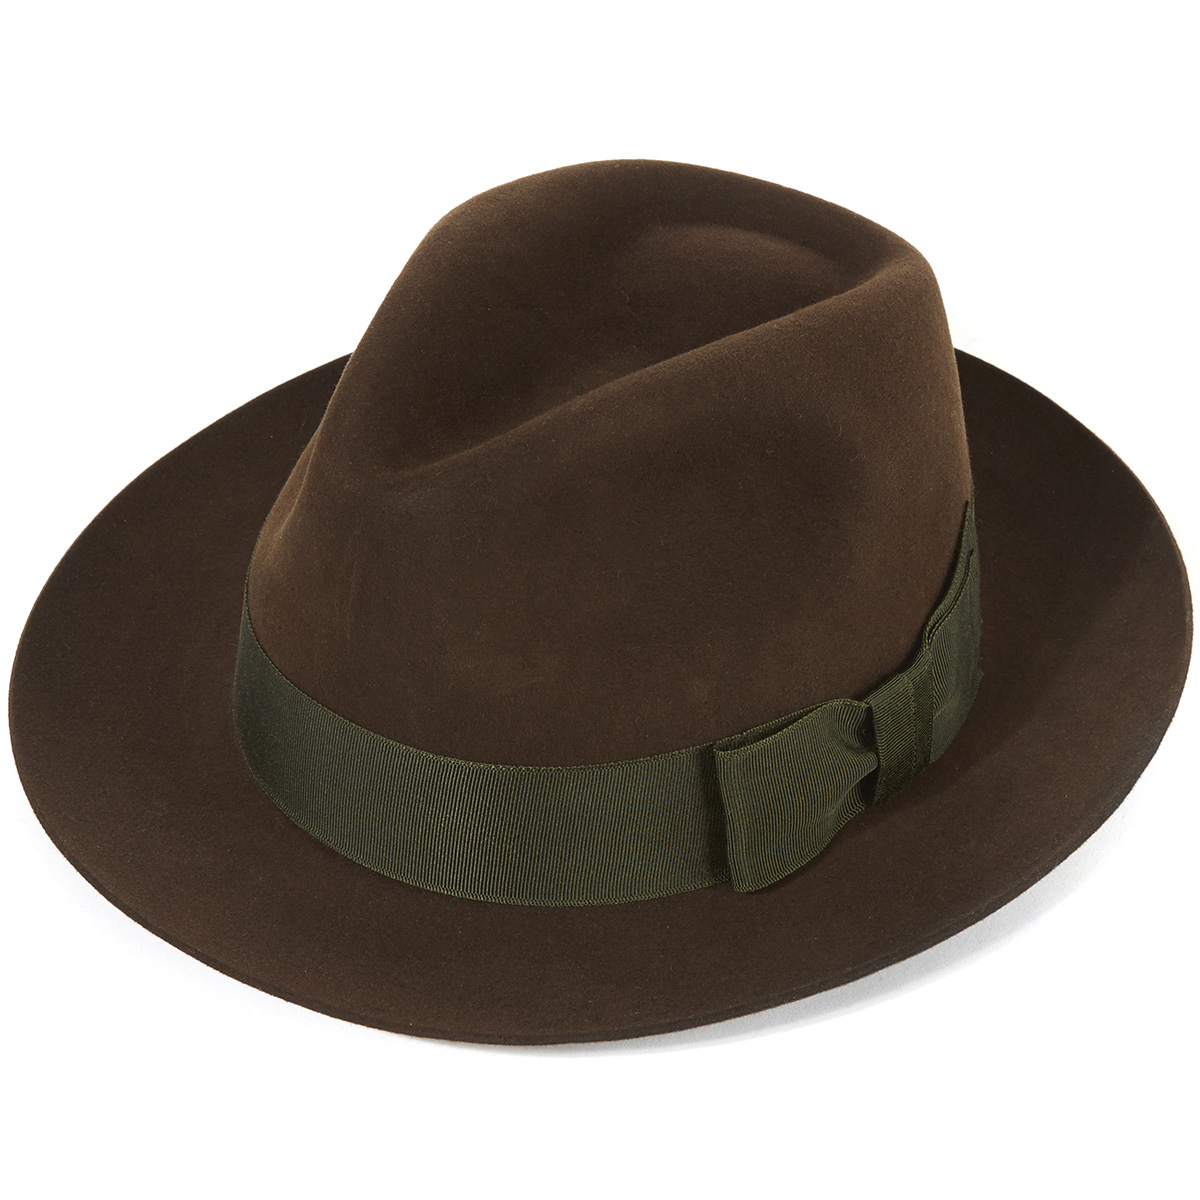 Bond Trilby - Brown in size 59